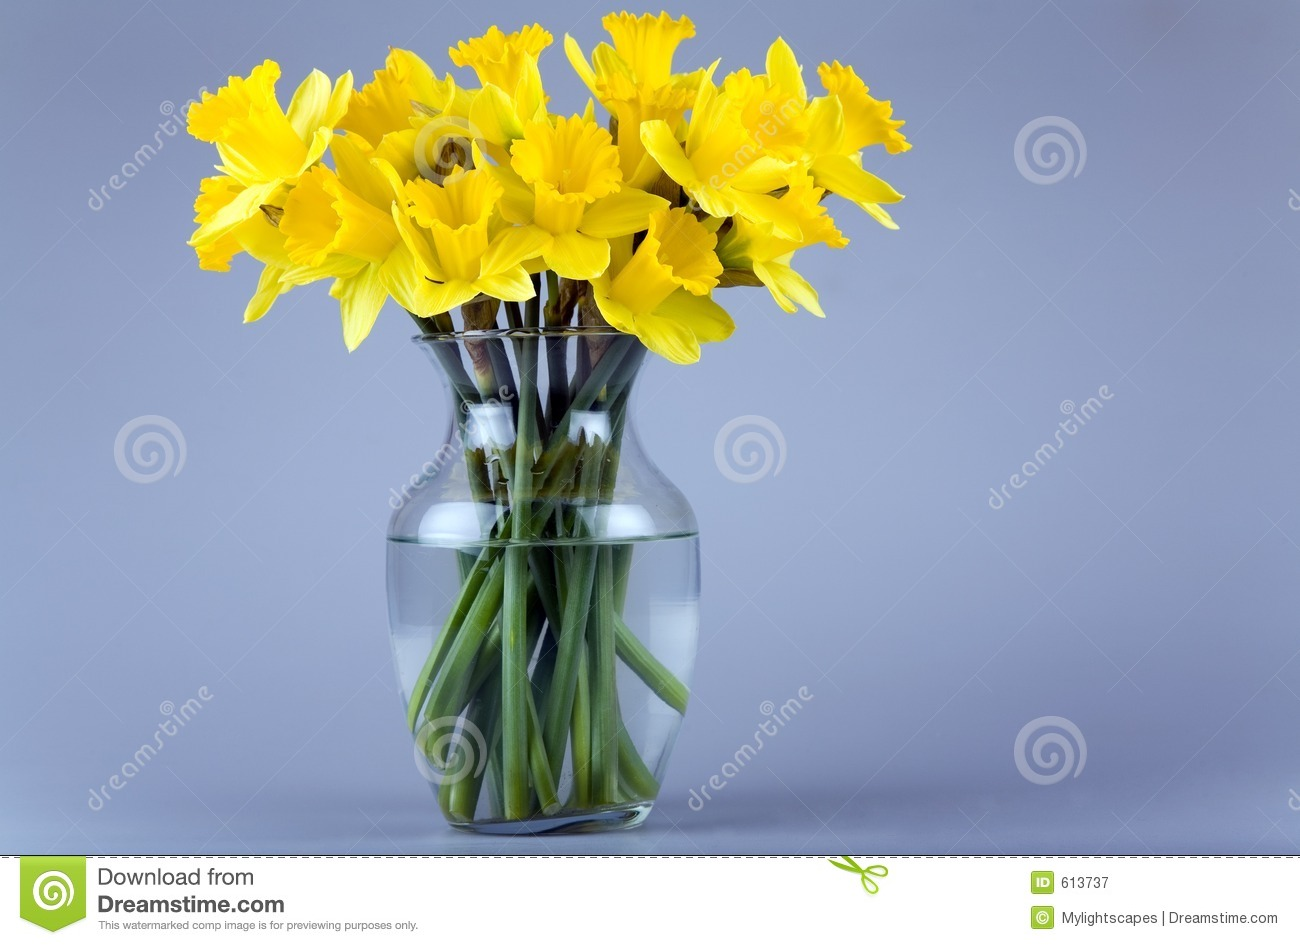 Daffodil flowers in the glass vase with water.